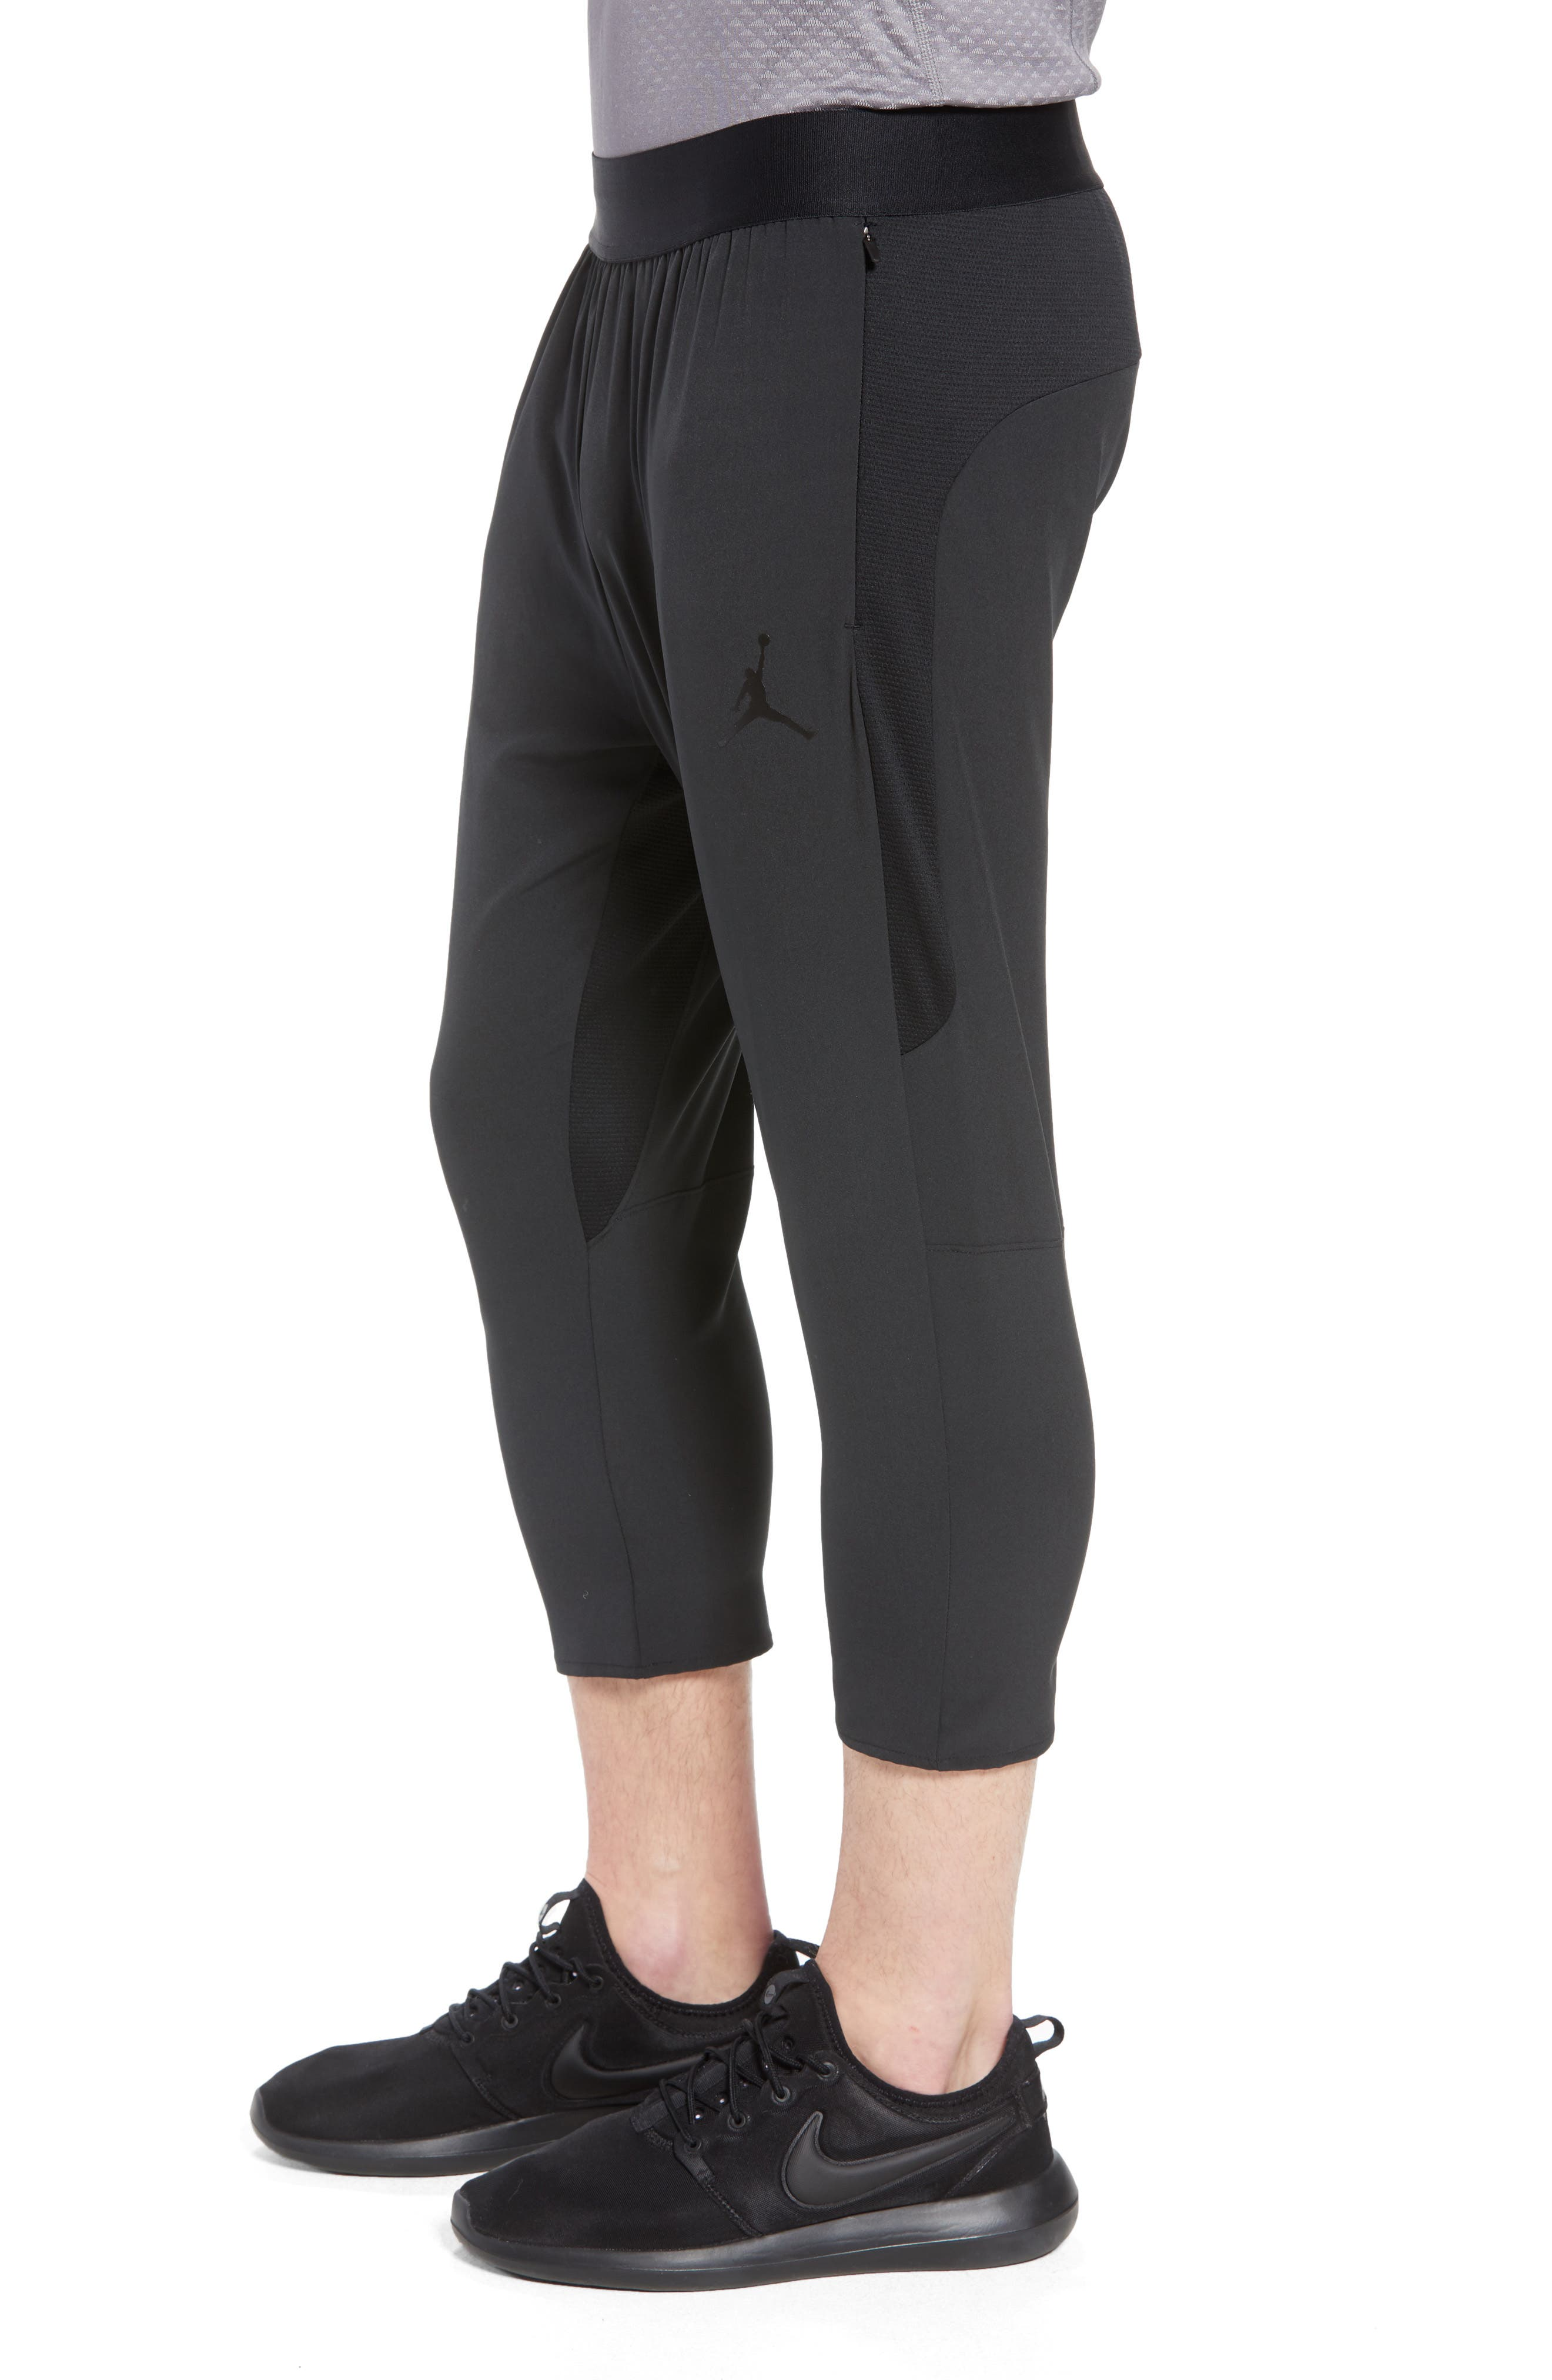 Ult Flight Pants,                             Alternate thumbnail 3, color,                             Black/ Black